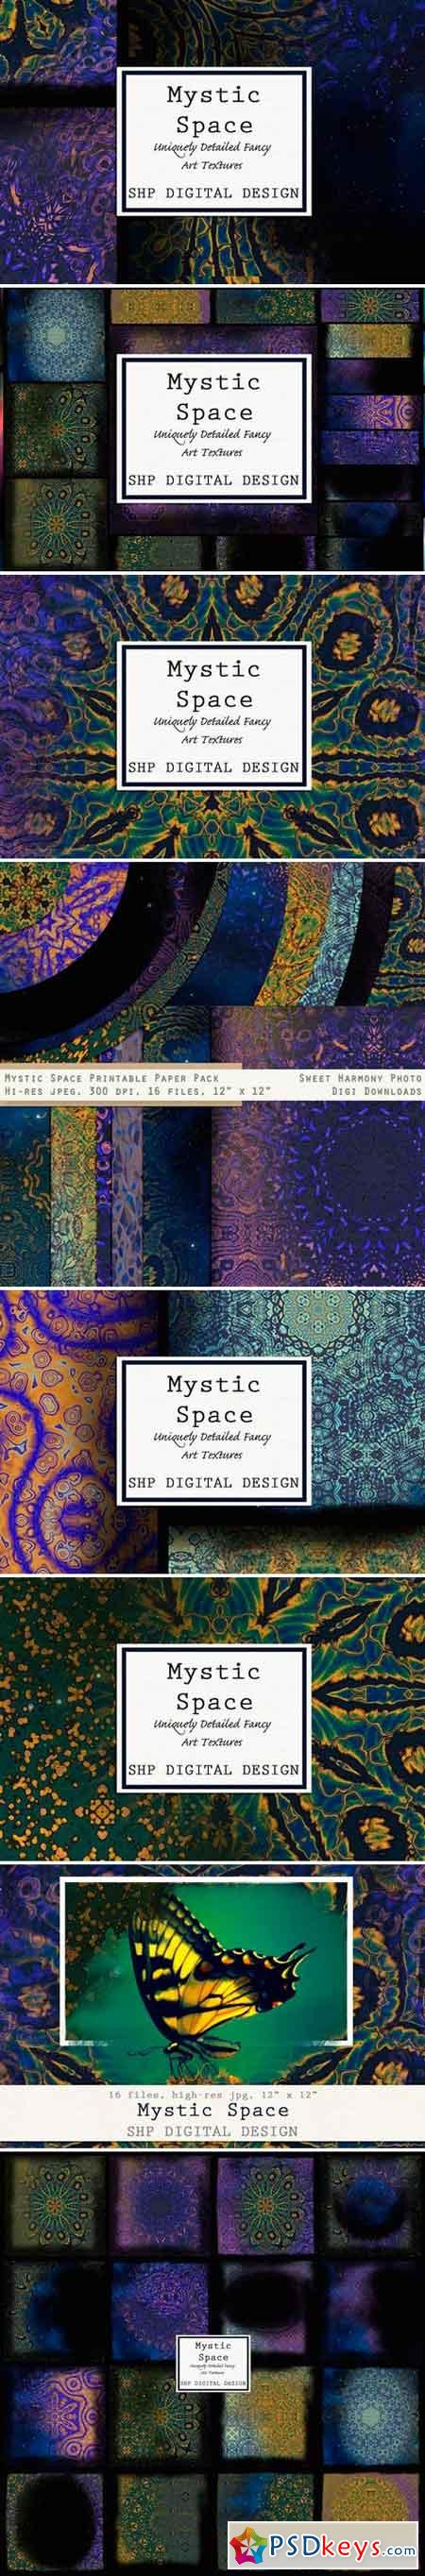 Mystic Space - Dream Landscapes 2487599